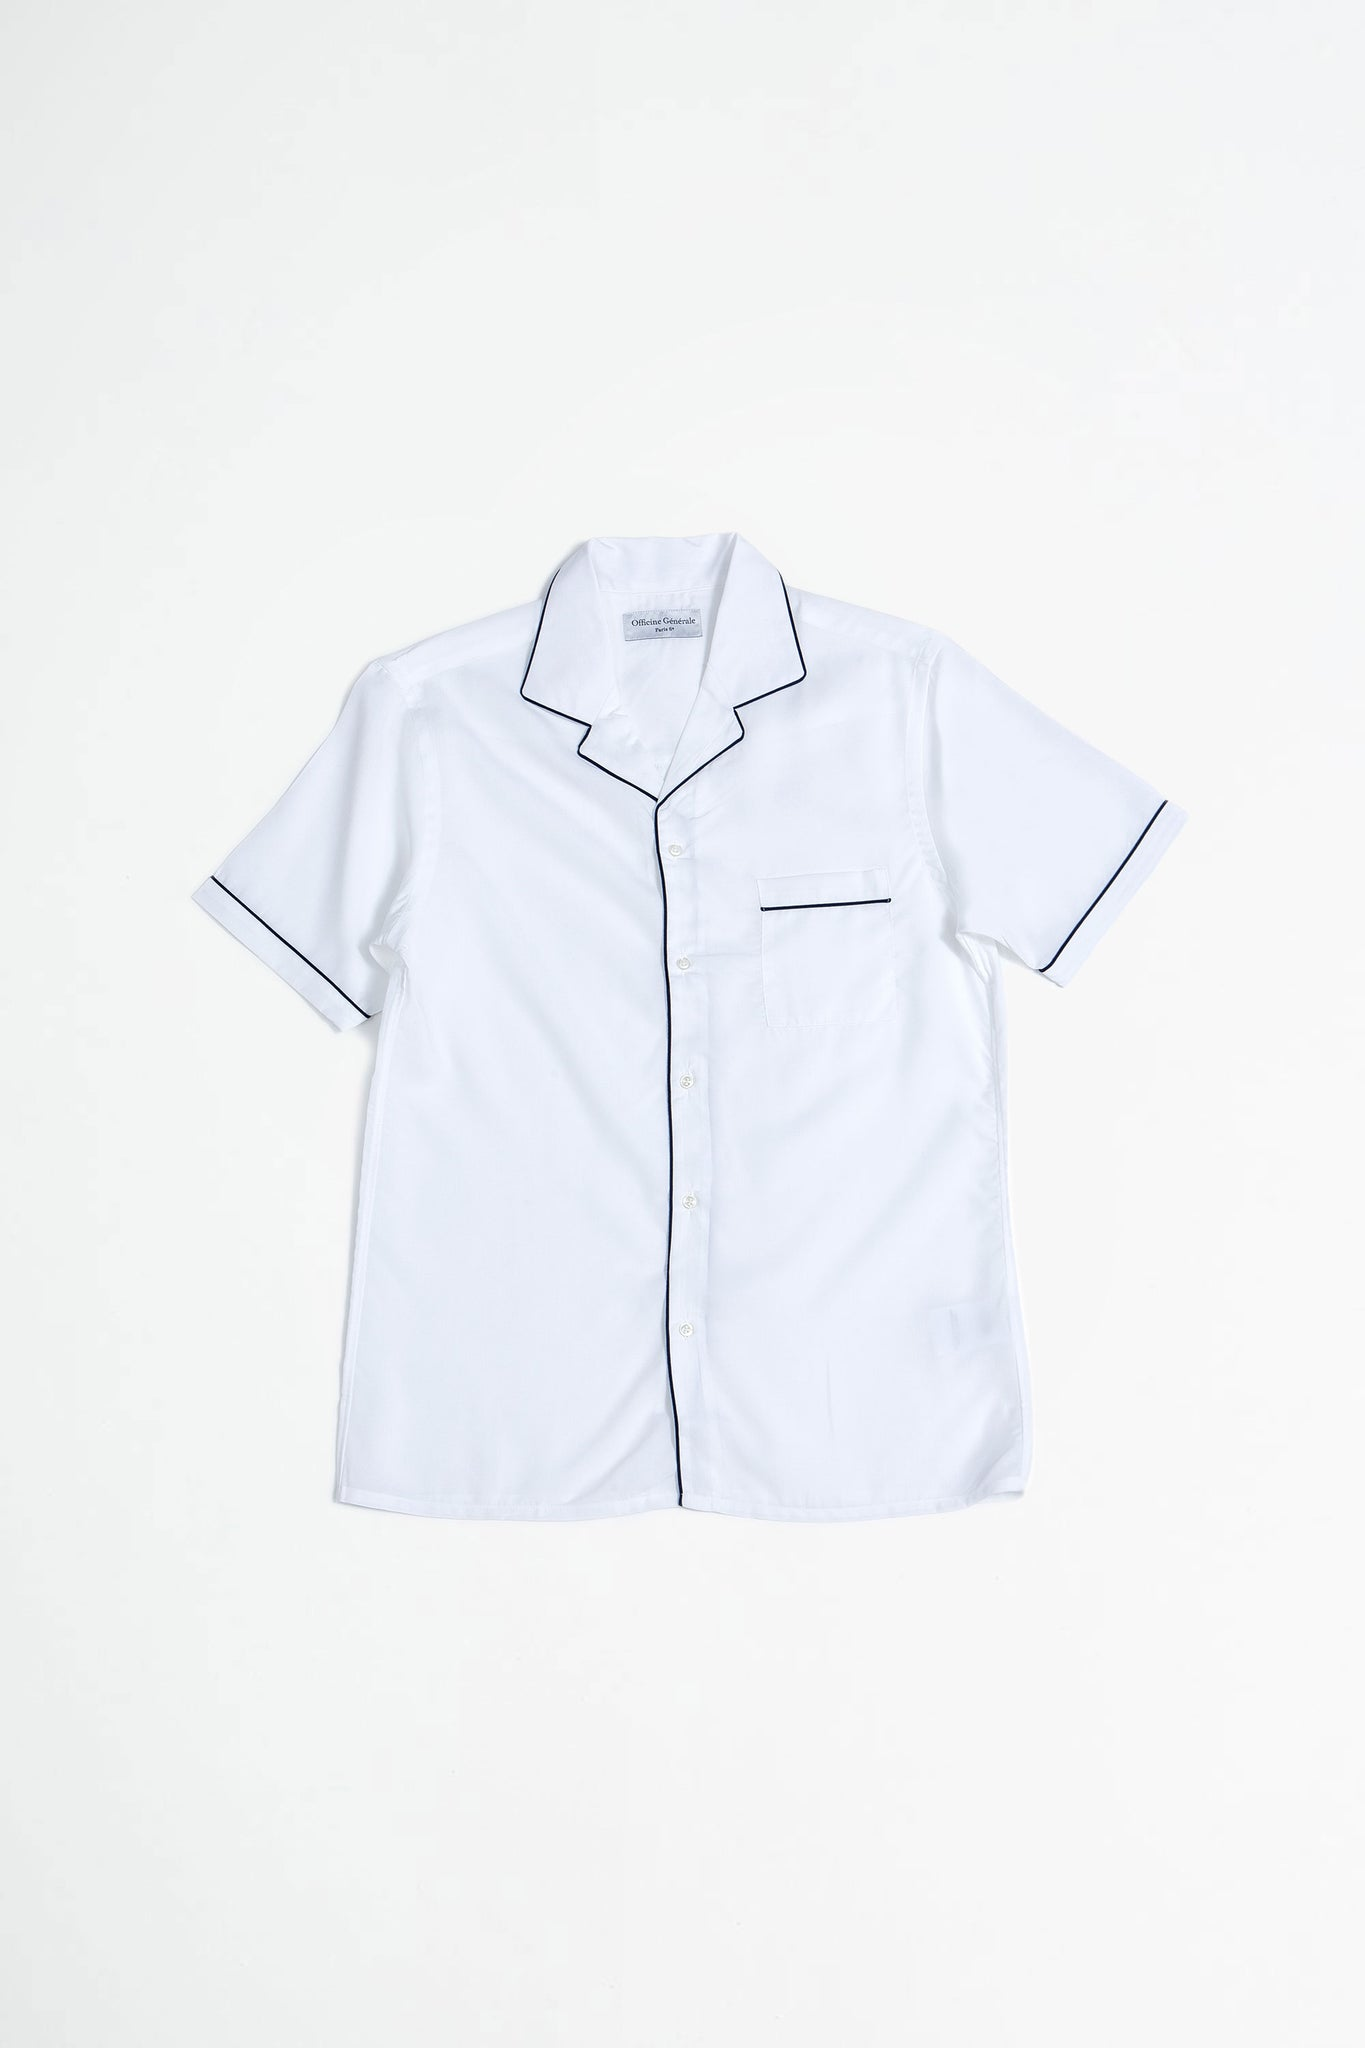 Jeffrey piping tencel shirt white/navy